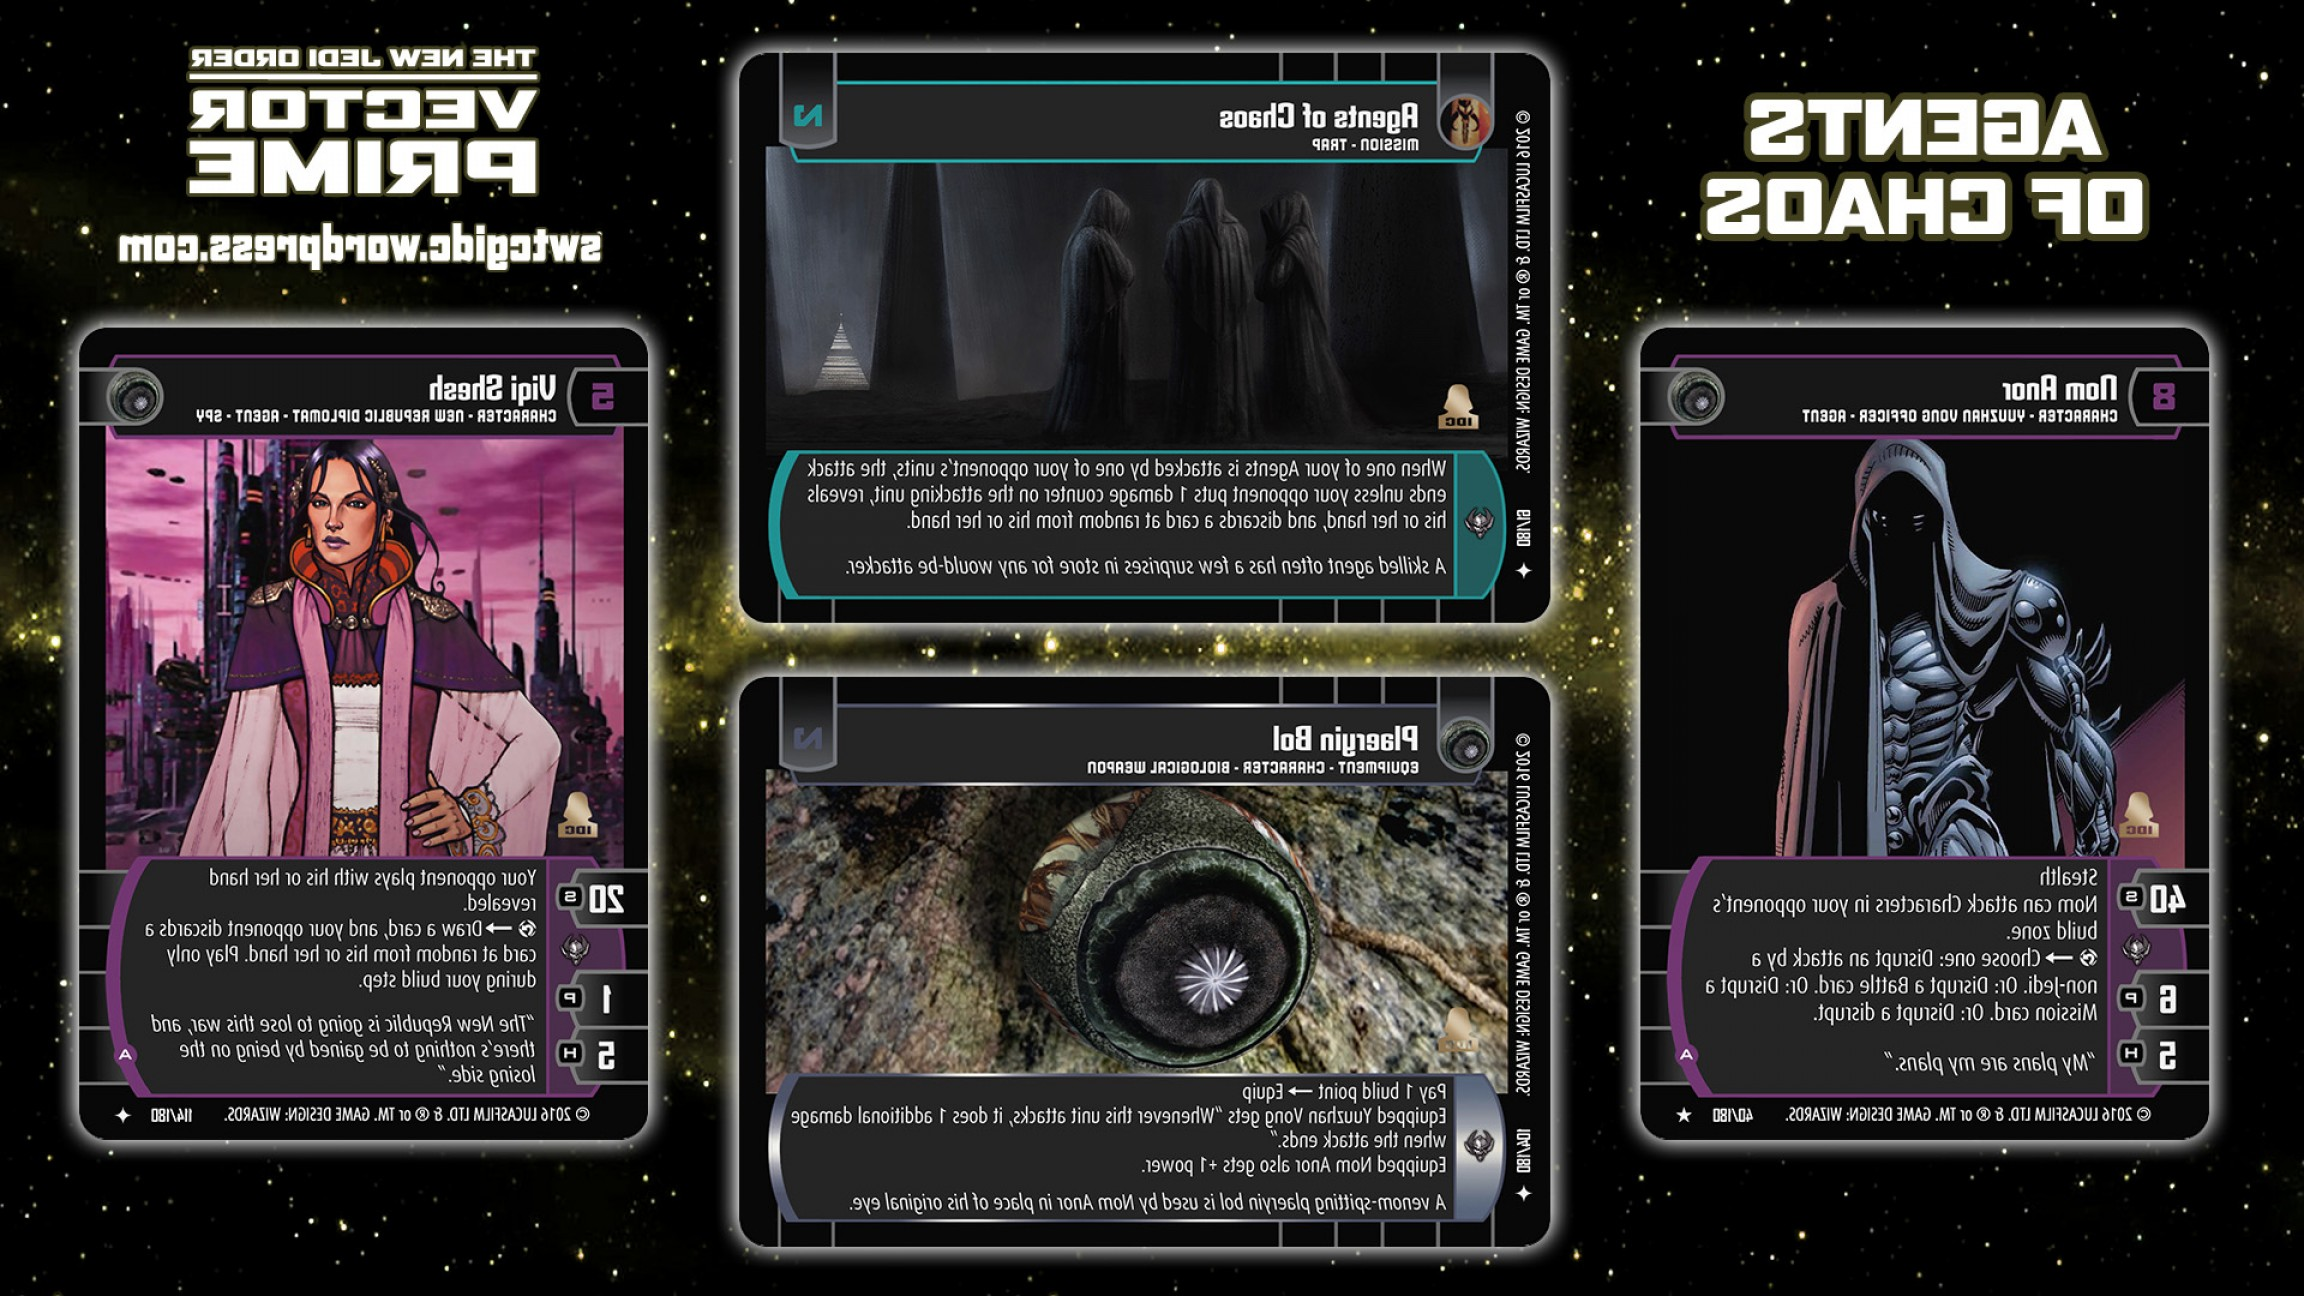 Star Wars Republic Vector: Star Wars Trading Card Game Vector Prime Wallpaper Agents Of Chaos